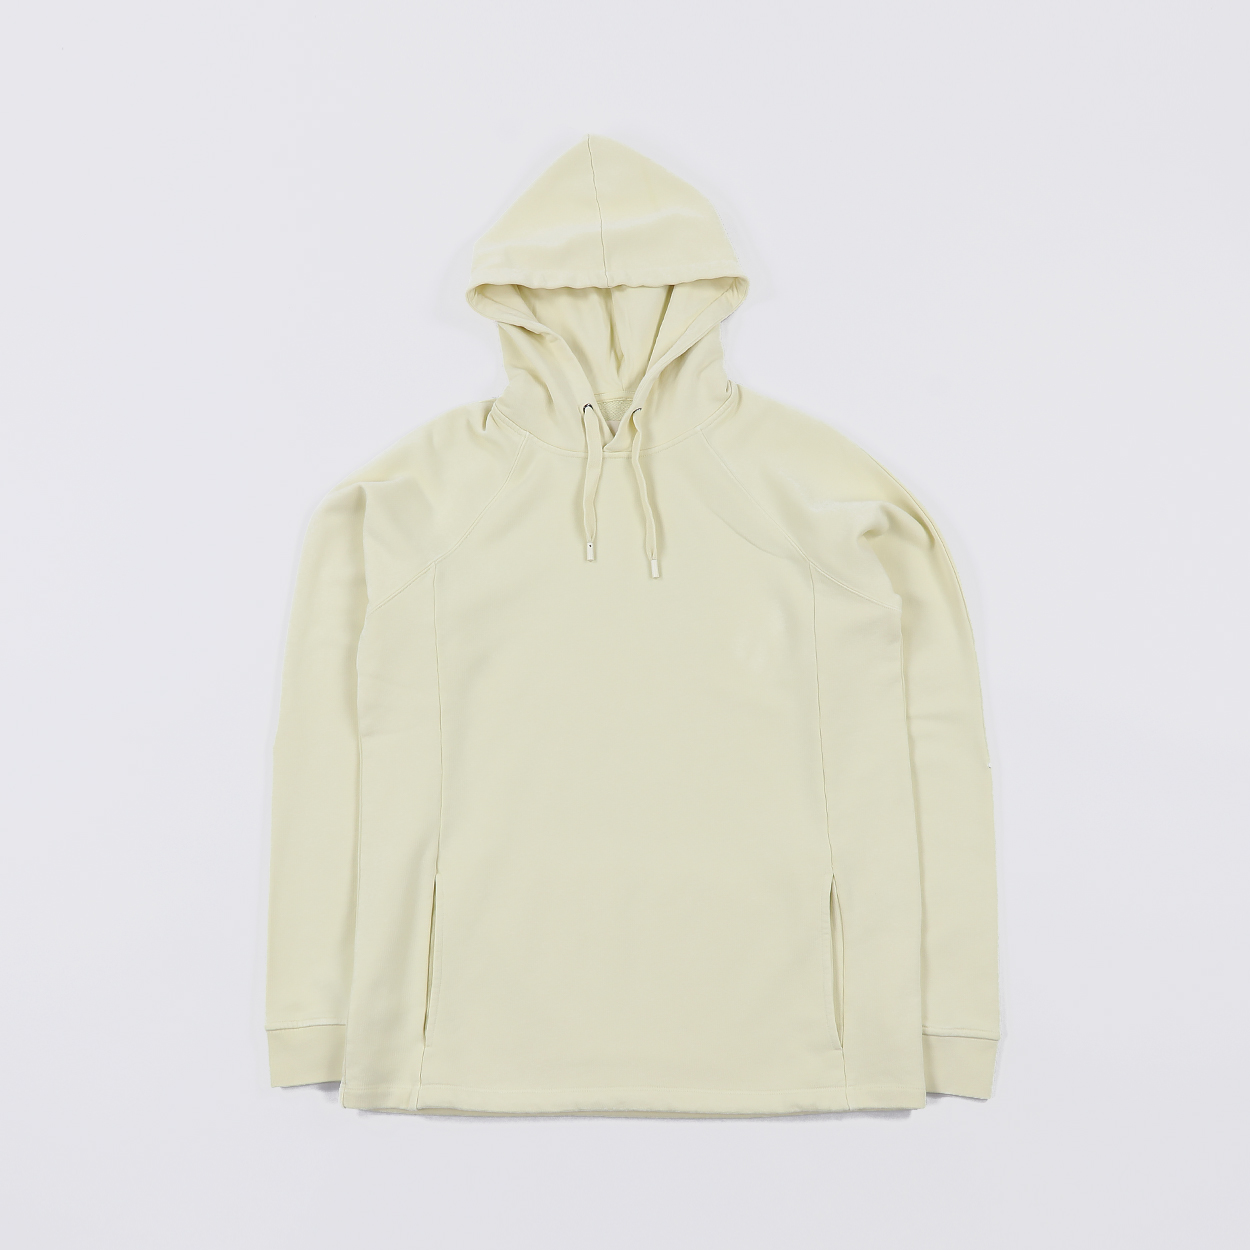 e542db3c9 Folk Clothing Mens Rivet Hood Sweatshirt Soft Yellow £80.00